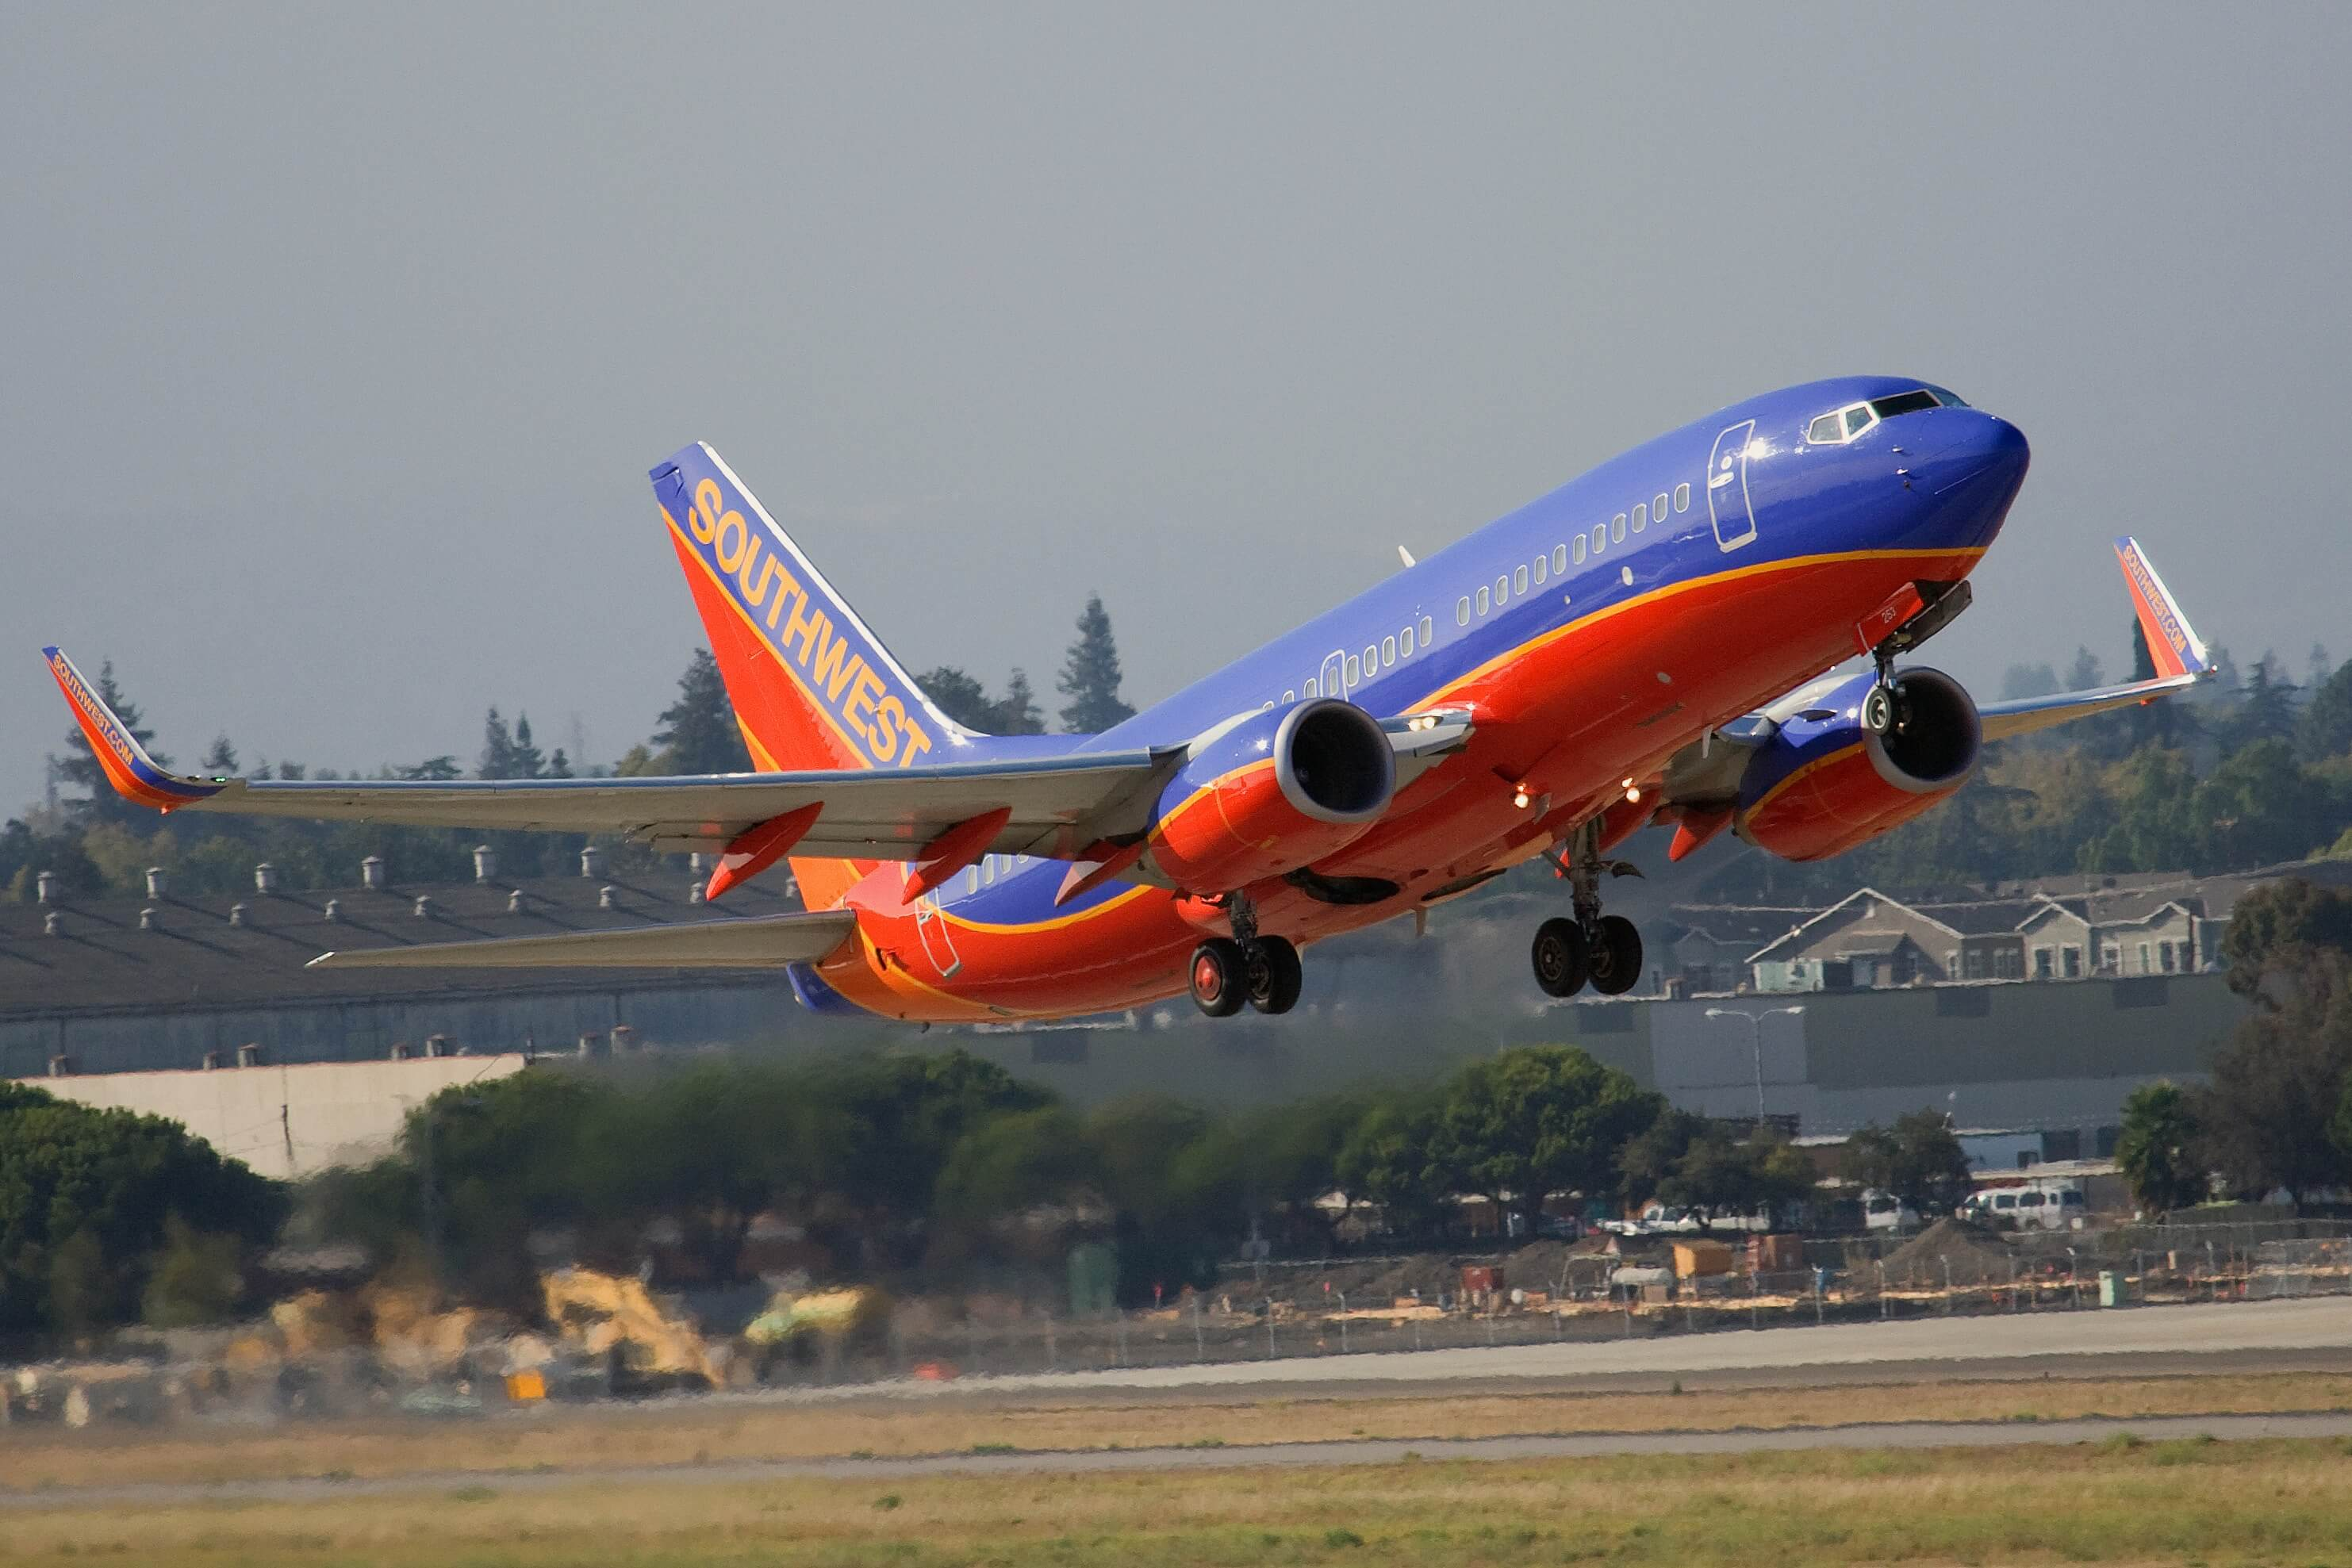 Southwest Airlines adds new nonstop flights to Kona, Hawaii, and Lihue, Kauai from San Jose